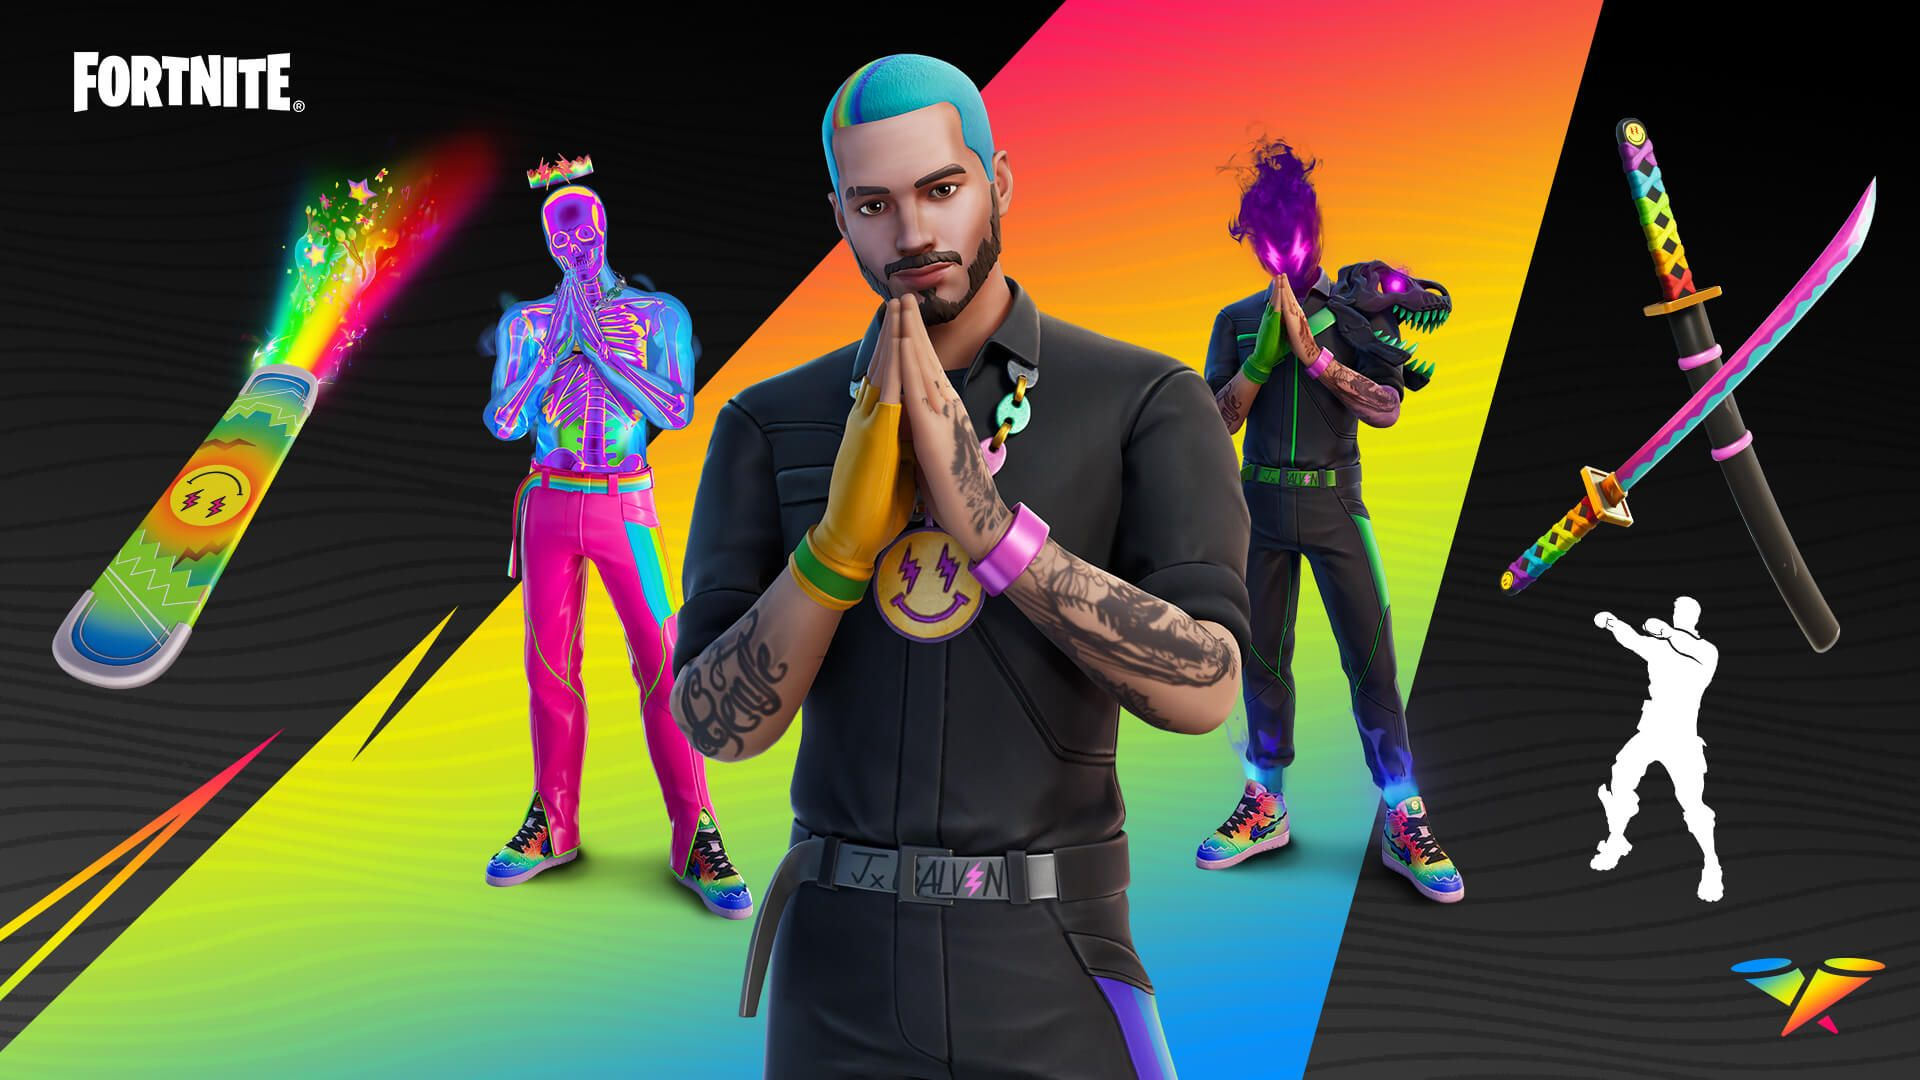 Fortnite: How to Get the J Balvin Skin Early